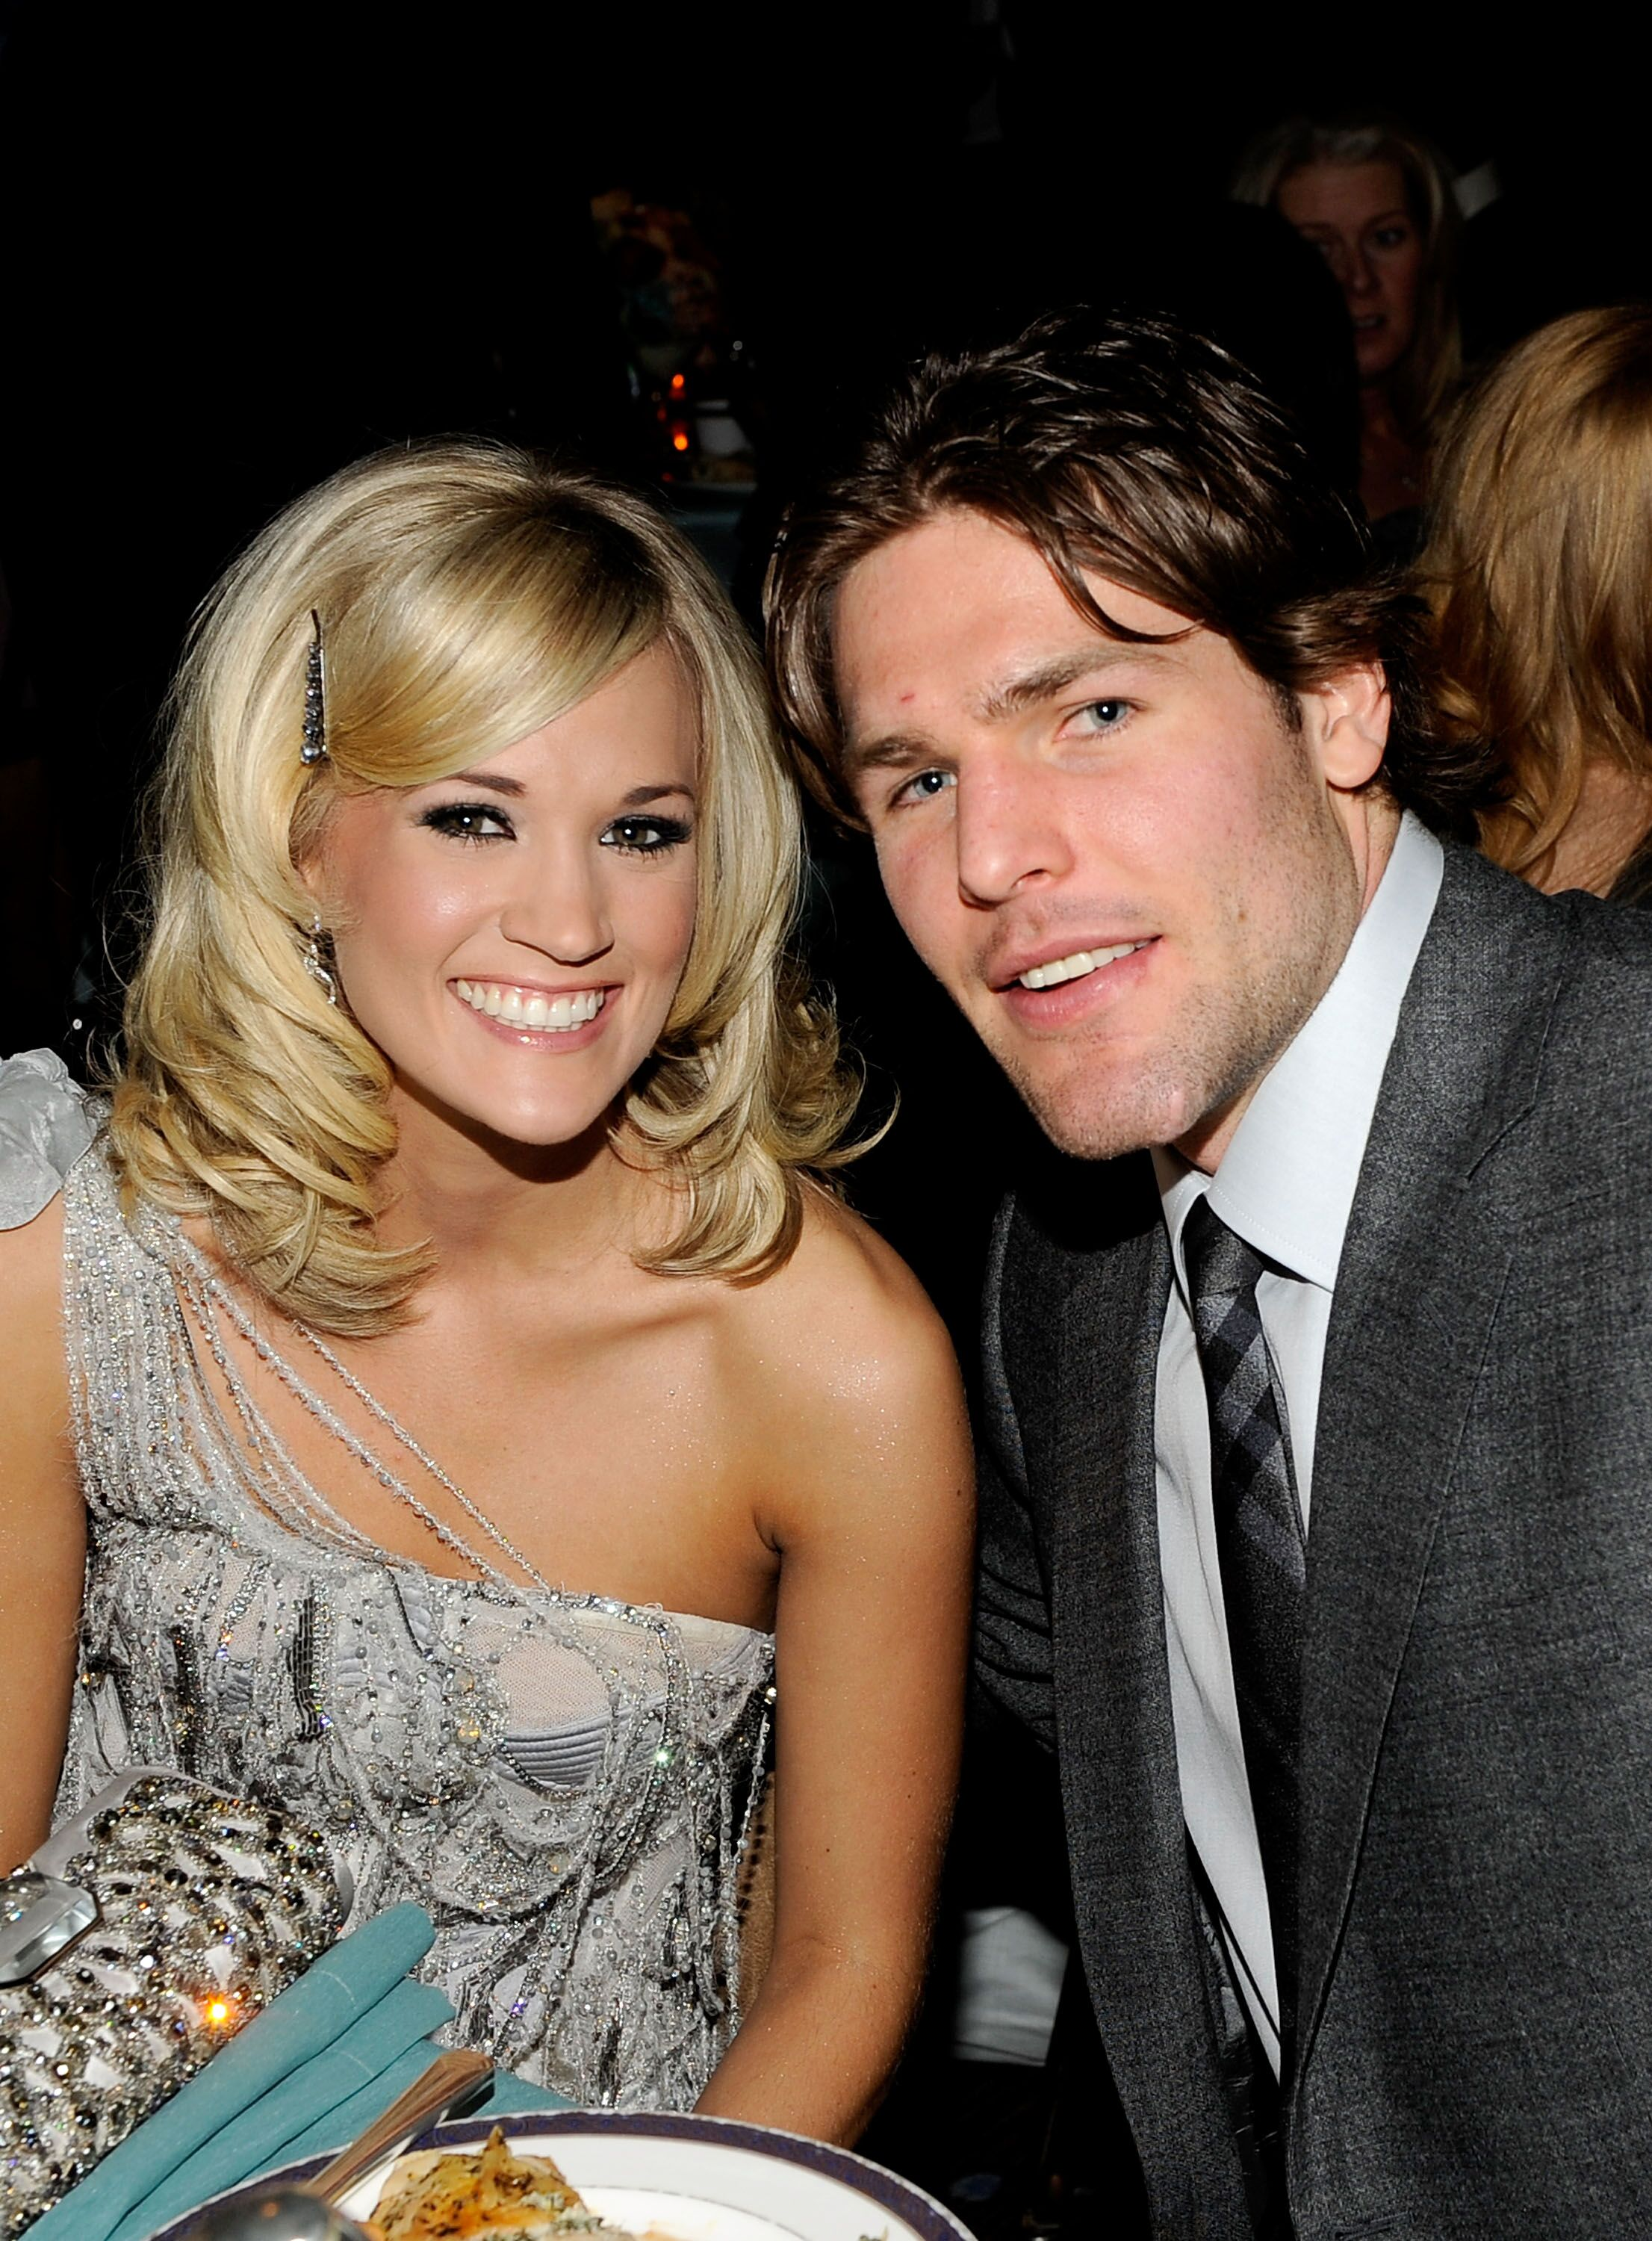 Carrie Underwood and Mike Fisher during the 52nd Annual GRAMMY Awards. | Source: Getty Images